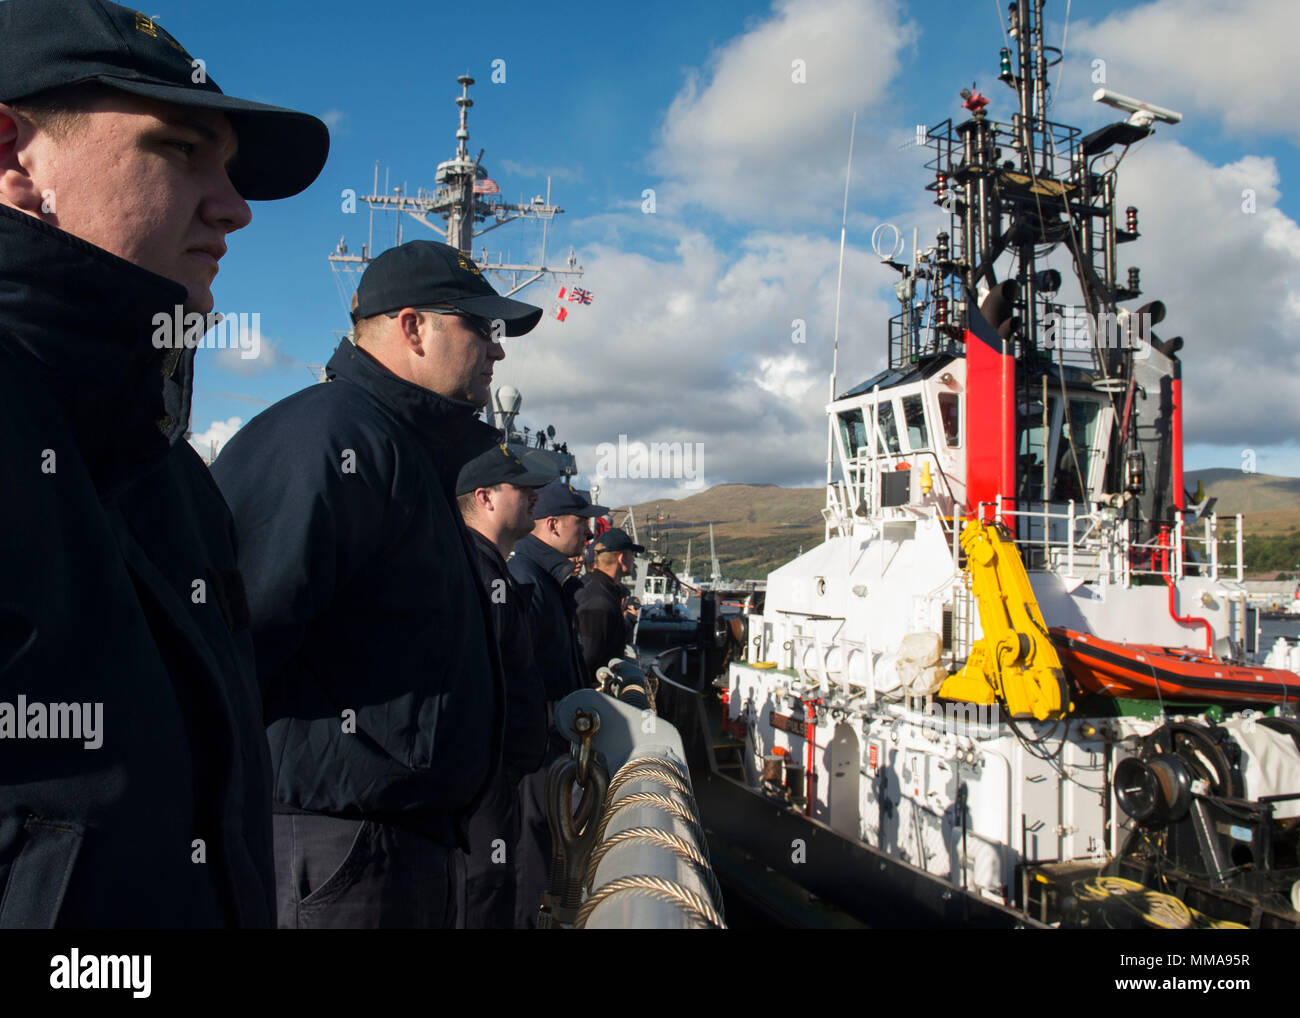 170921-N-UB406-445 FASLANE, Scotland (Sept. 21, 2017) Sailors assigned to the Arleigh Burke-class guided-missile destroyer USS Mitscher (DDG 57) man the rails as the ship arrives at Her Majesty's Naval Base  Clyde in Scotland, Sept. 21, 2017. Mitscher, homeported in Norfolk, is conducting naval operations in the U.S. 6th Fleet area of operations in support of U.S. national security interests in Europe. (U.S. Navy photo by Mass Communication Specialist Seaman Cameron M. Stoner/Released) - Stock Image